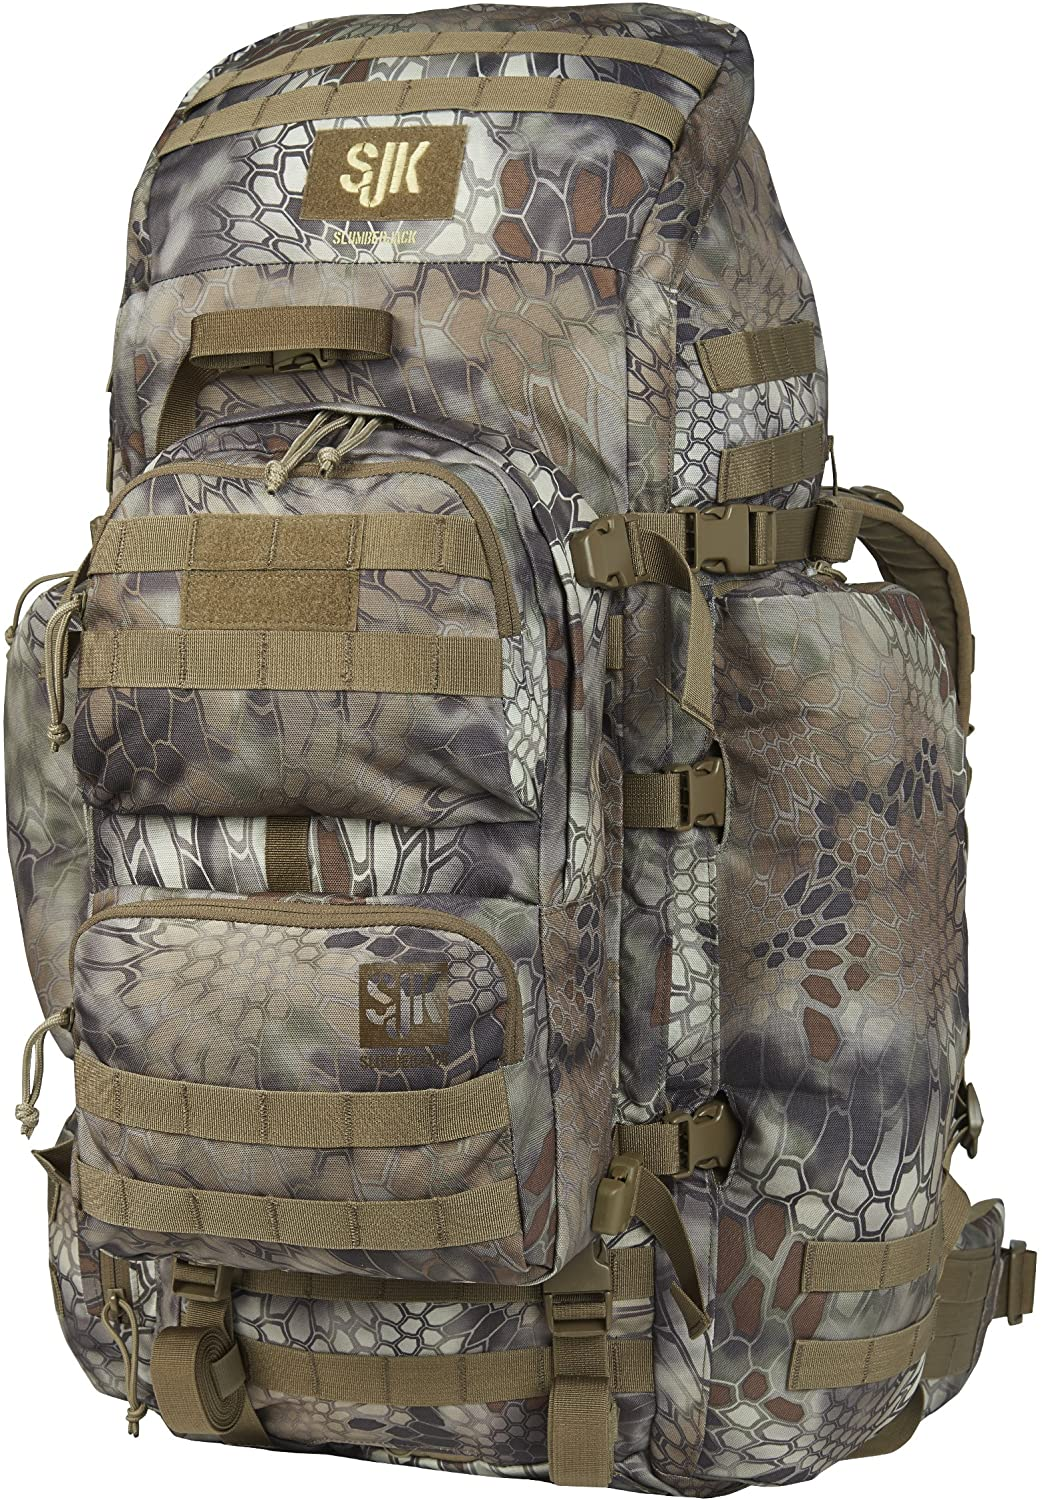 Slumberjack Bounty 2.0 Highlander Hunting Backpack